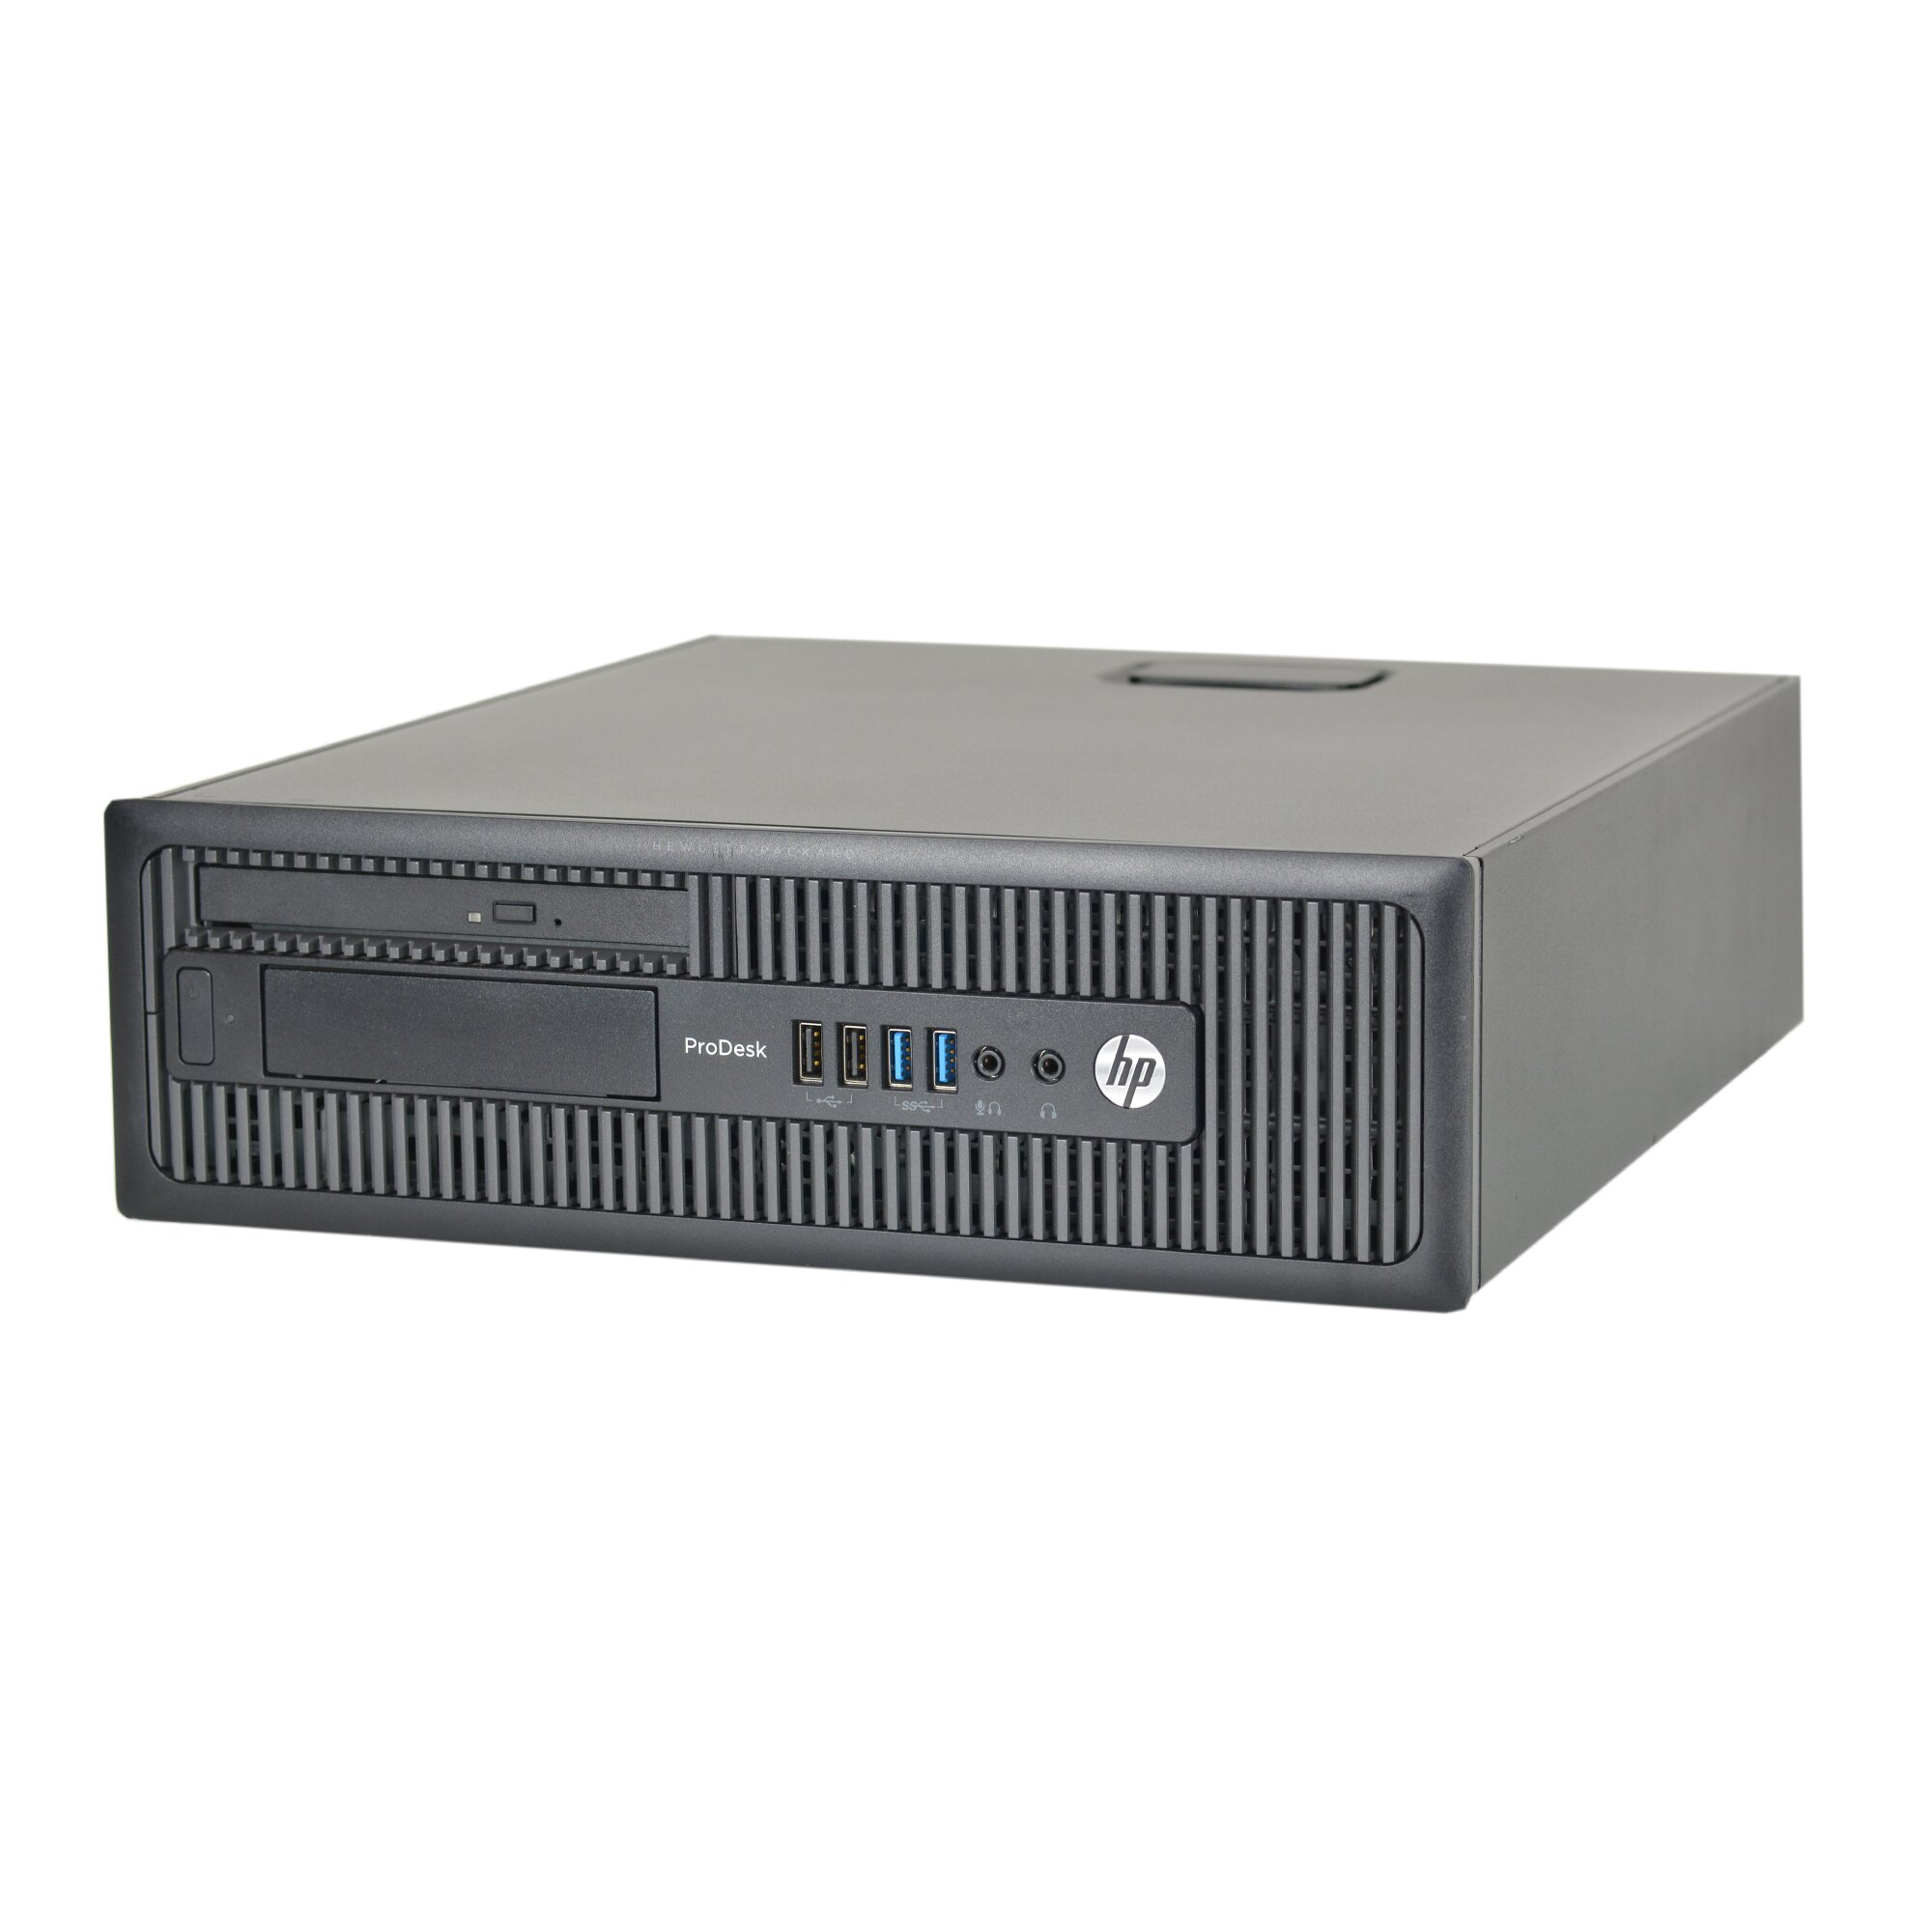 HP PRODESK 400 G1 SFF WINDOWS 10 DRIVERS DOWNLOAD